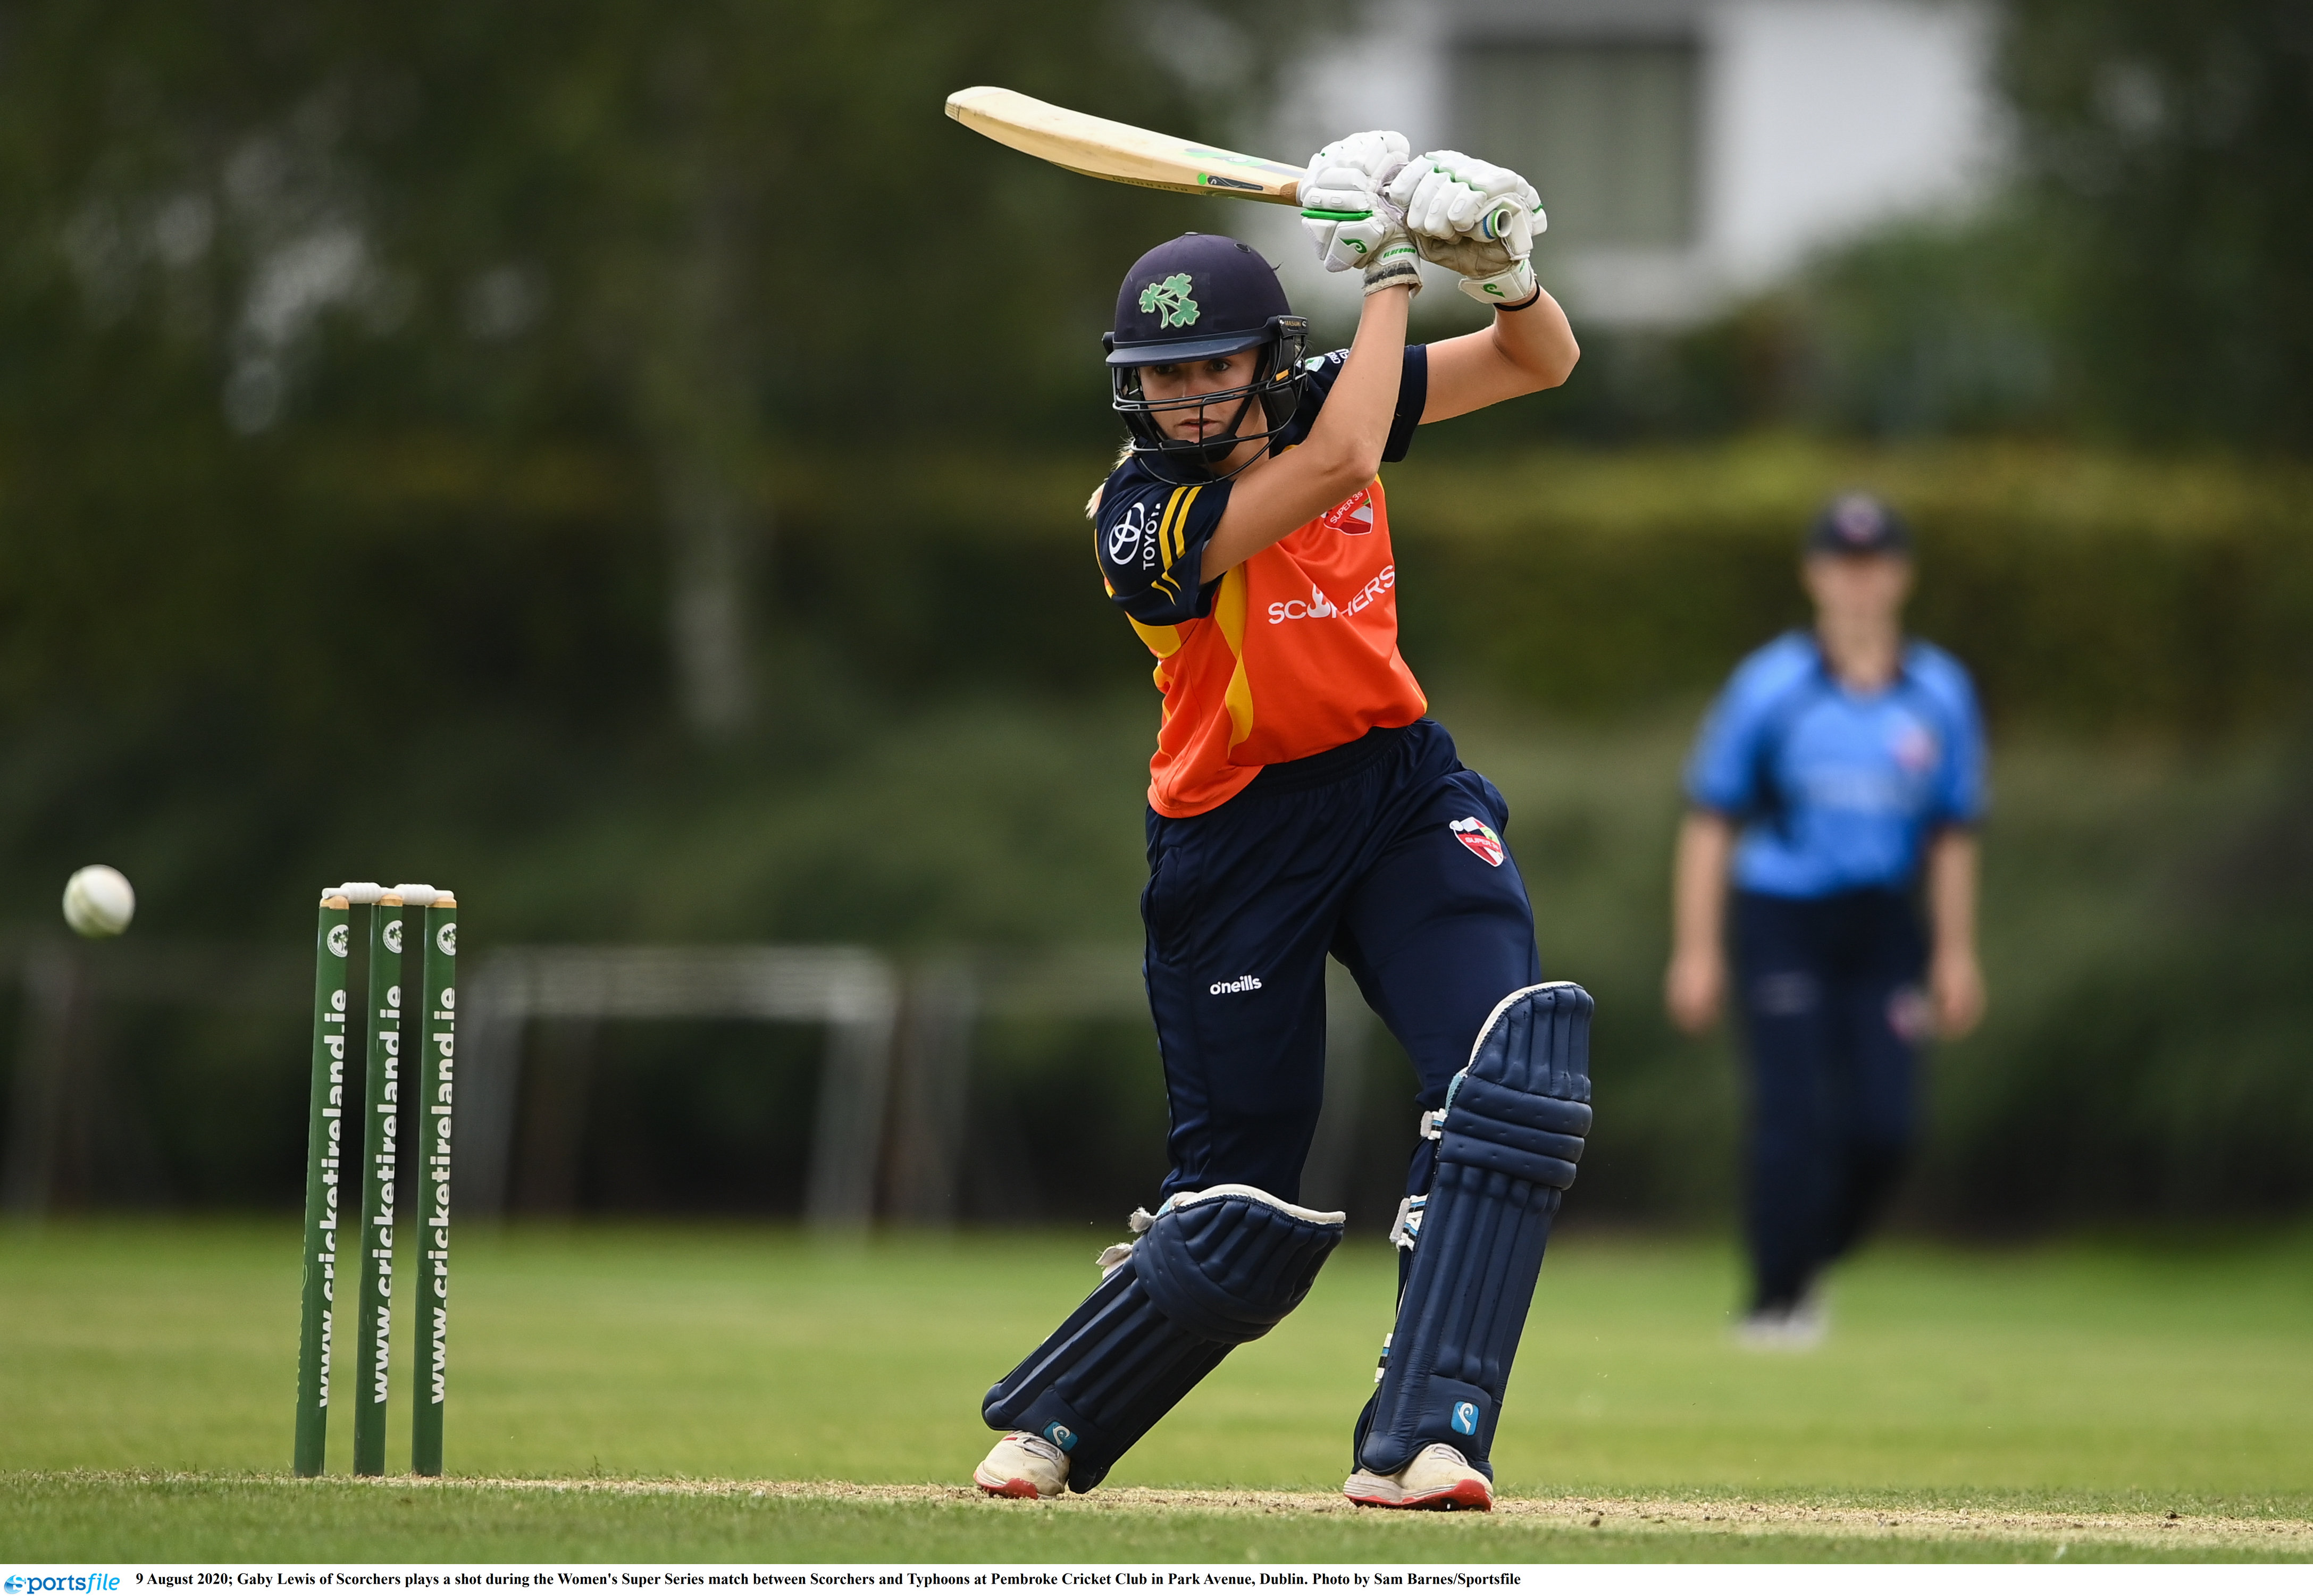 Cricket Ireland: Super Series squads announced for 2021 season